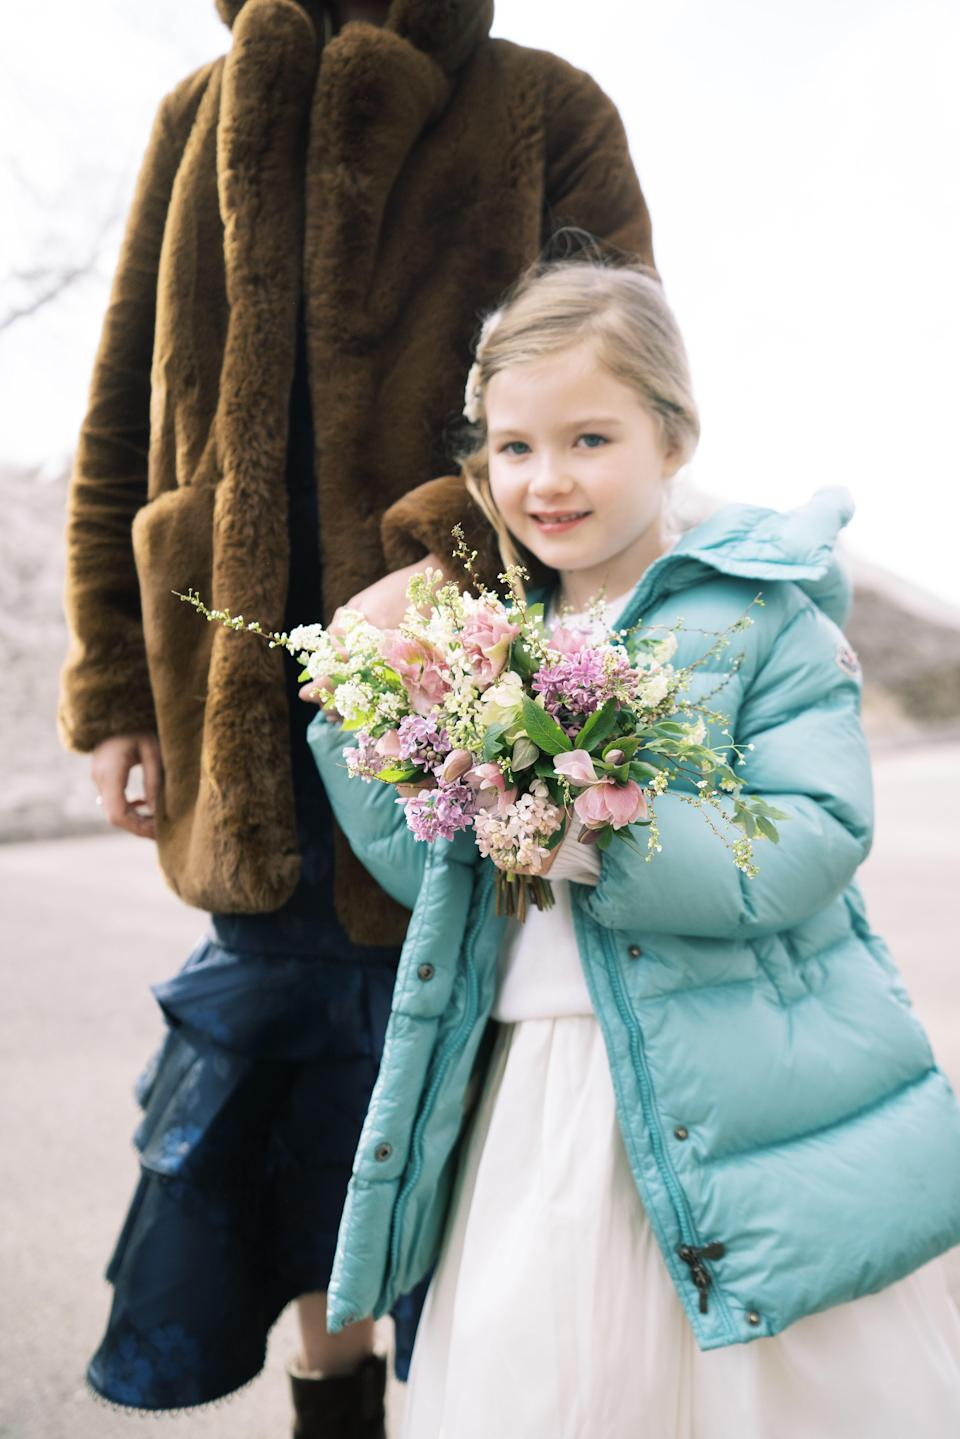 My sister-in-law, Yolande Whitcomb, and our beautiful flower girl, her daughter May.